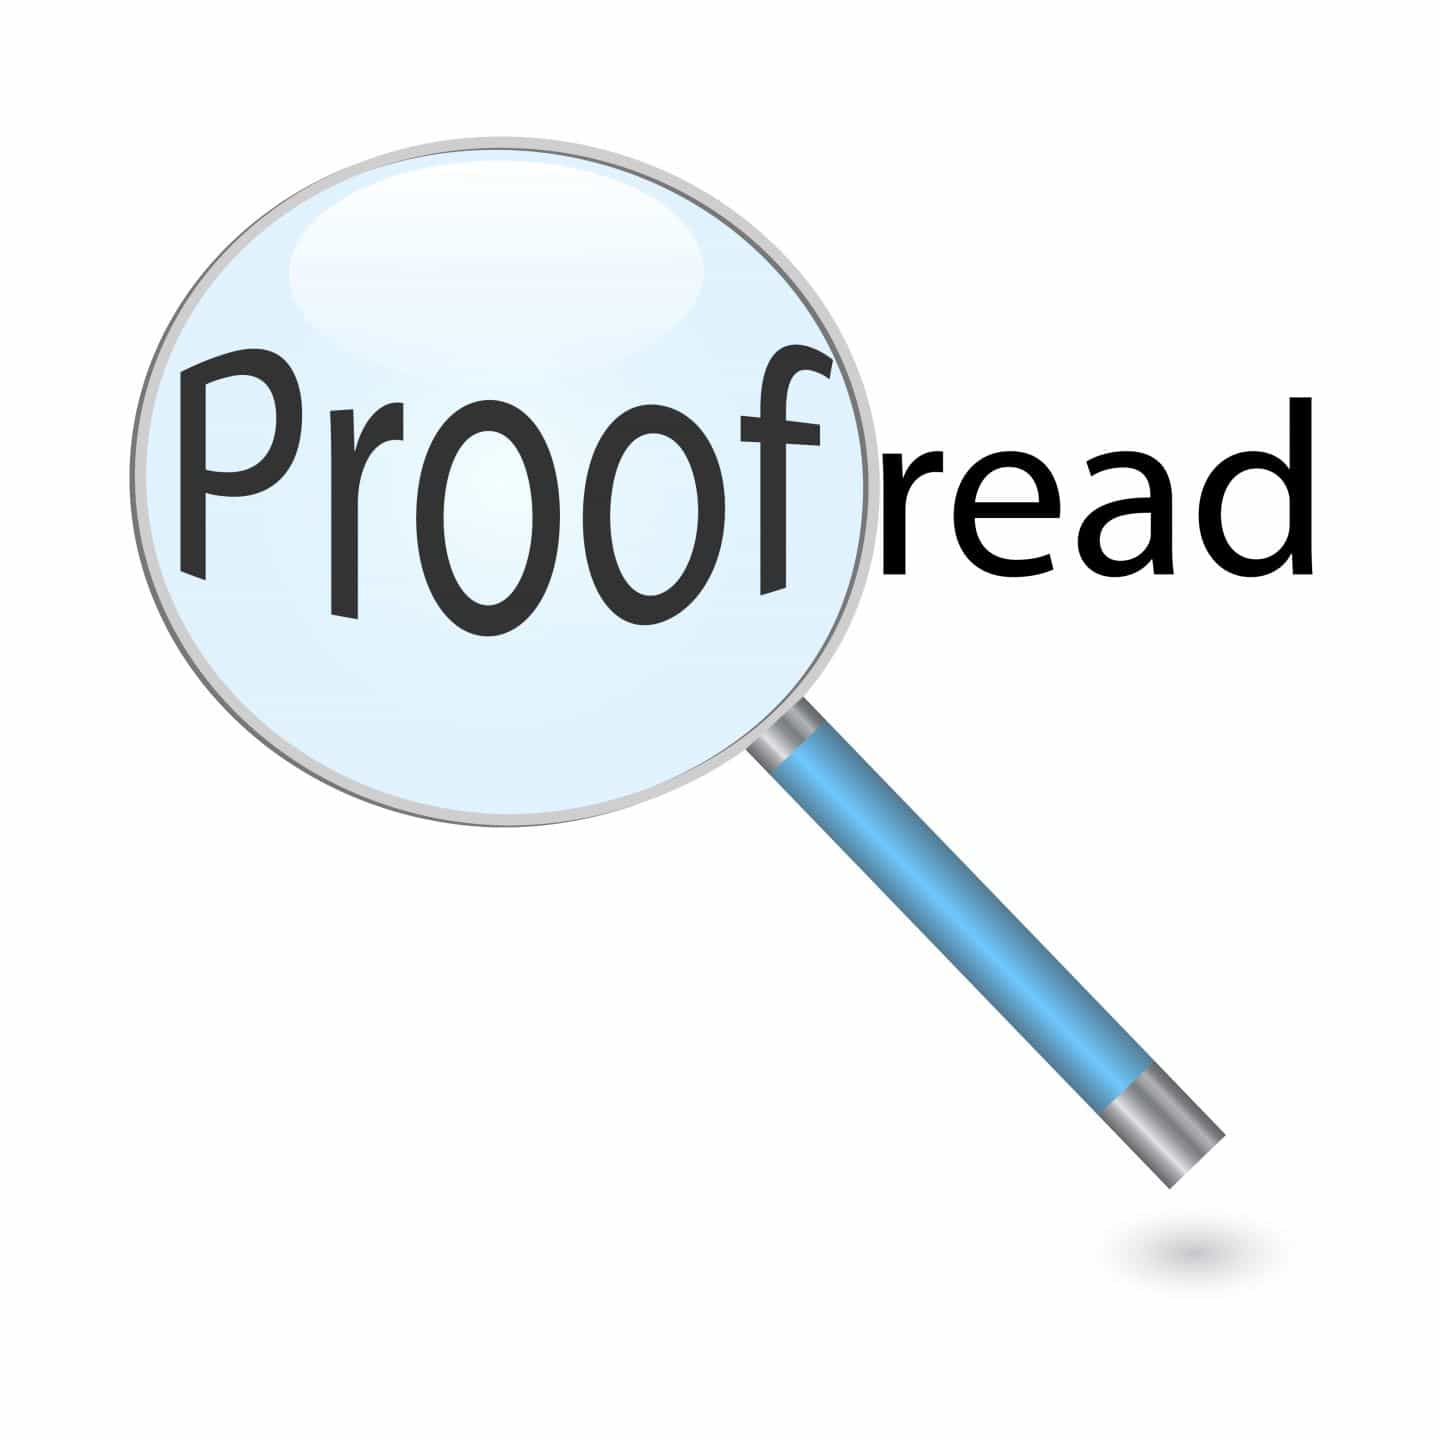 Proofread essays